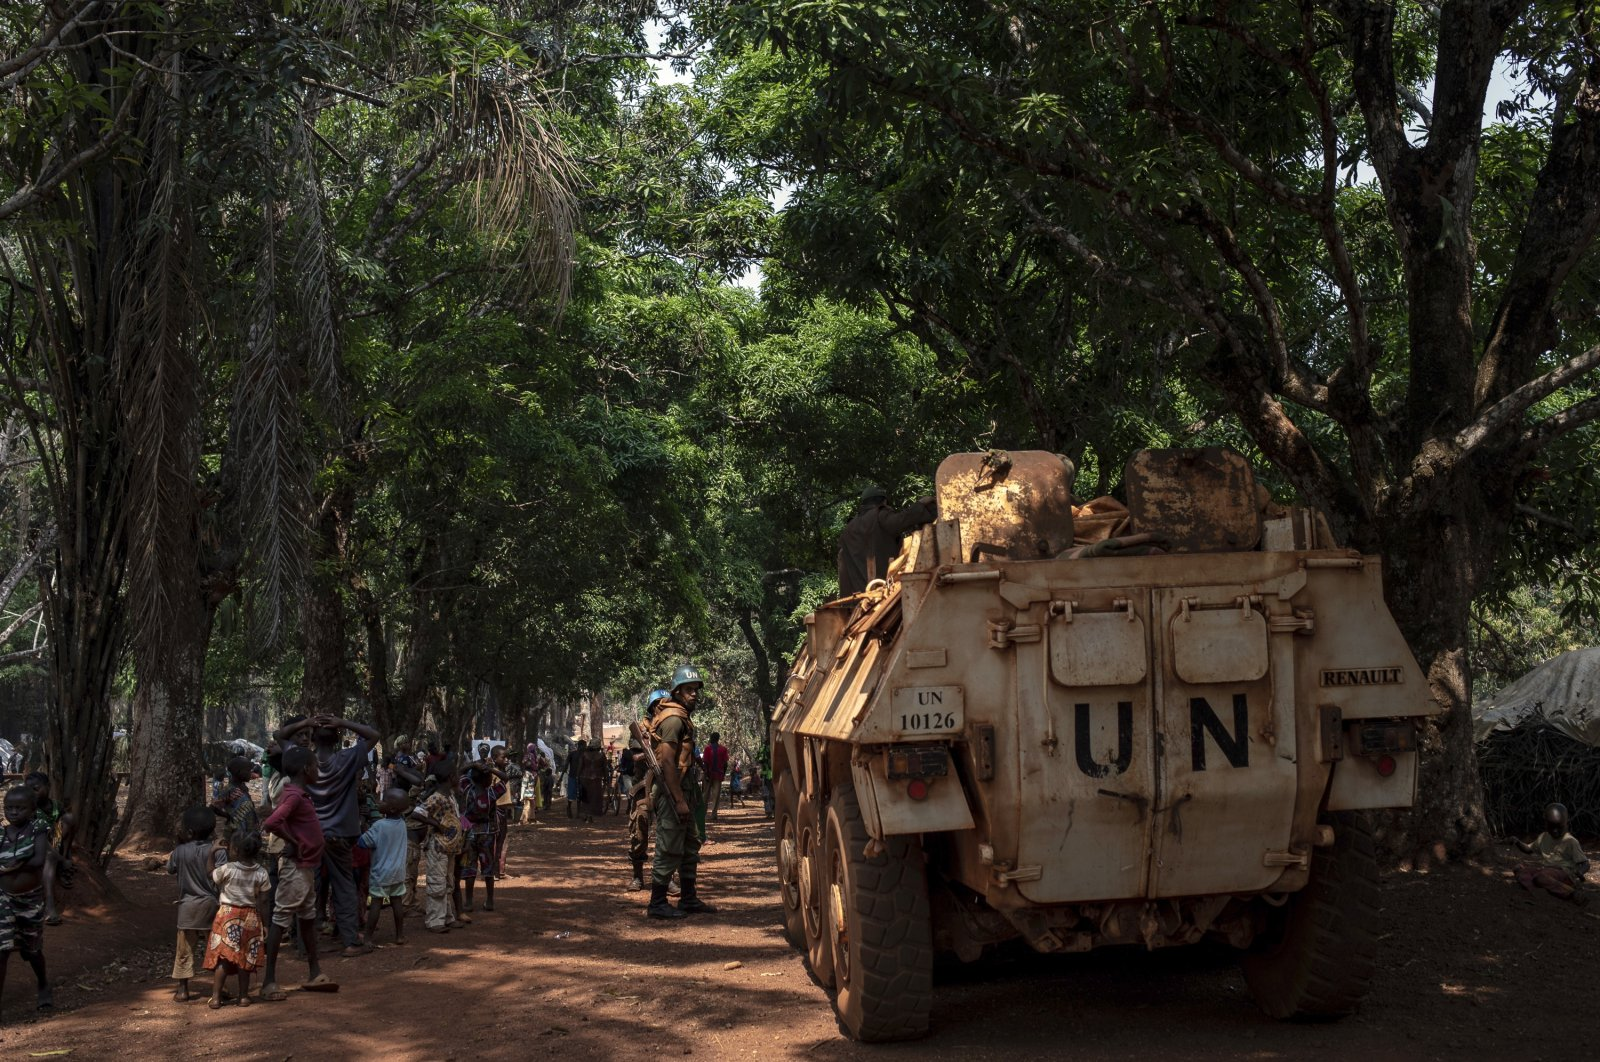 Moroccan U.N. peacekeepers patrol the village of Cesacoba, Central African Republic, Feb. 14, 2021. (AP Photo)